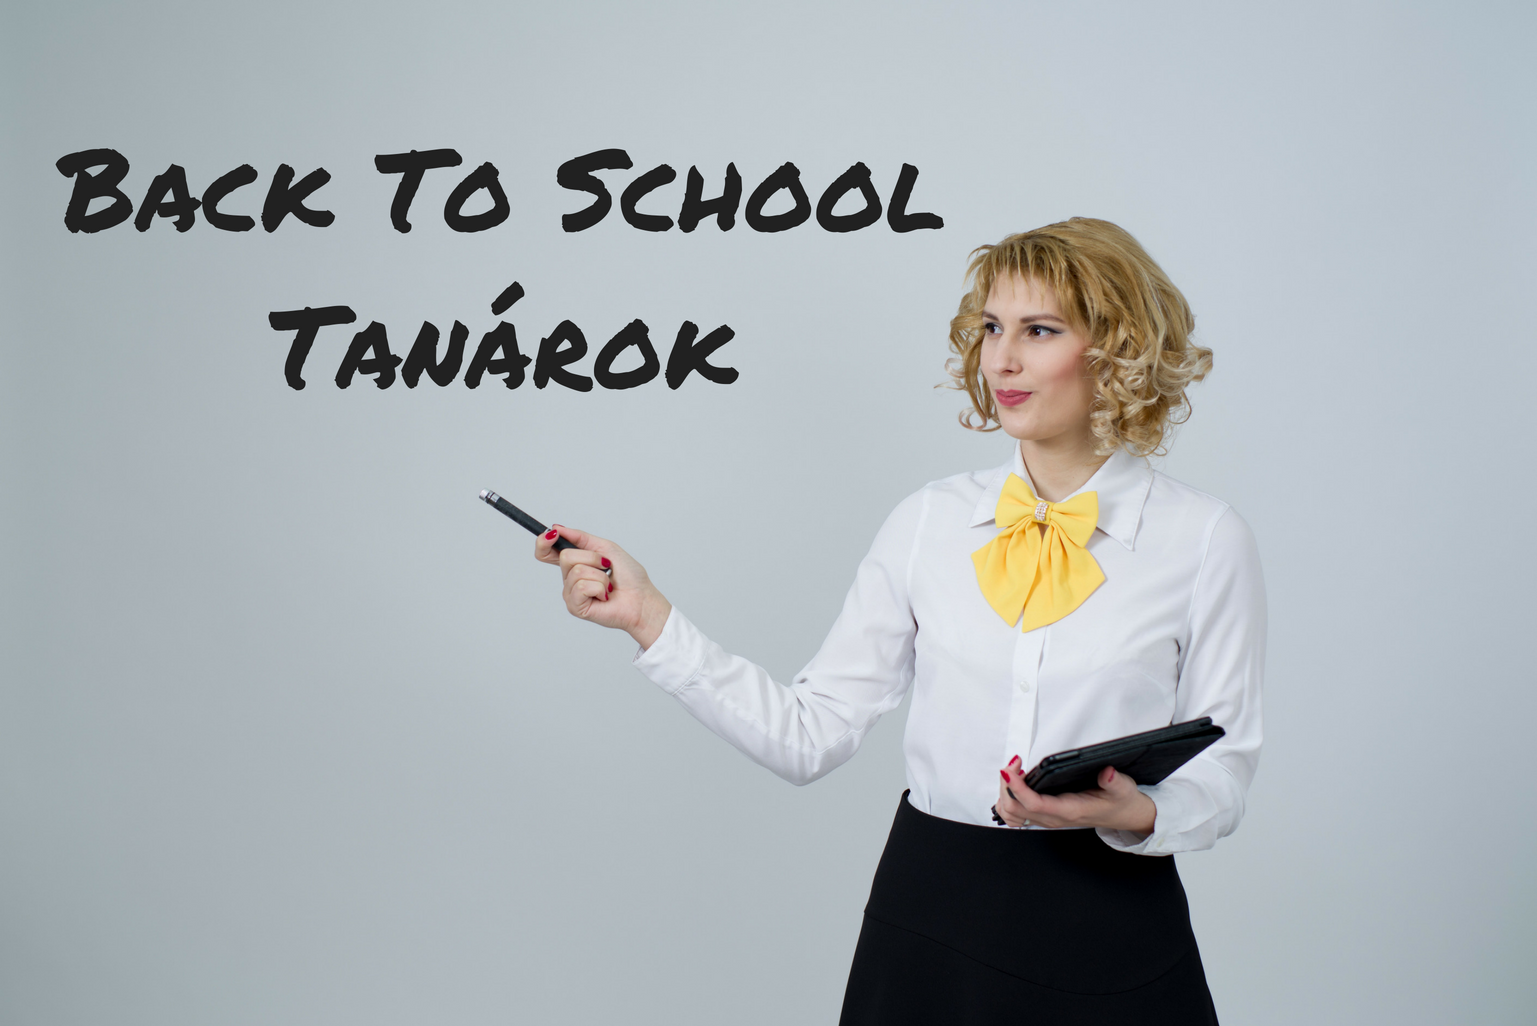 back_to_school_3tanarok.png